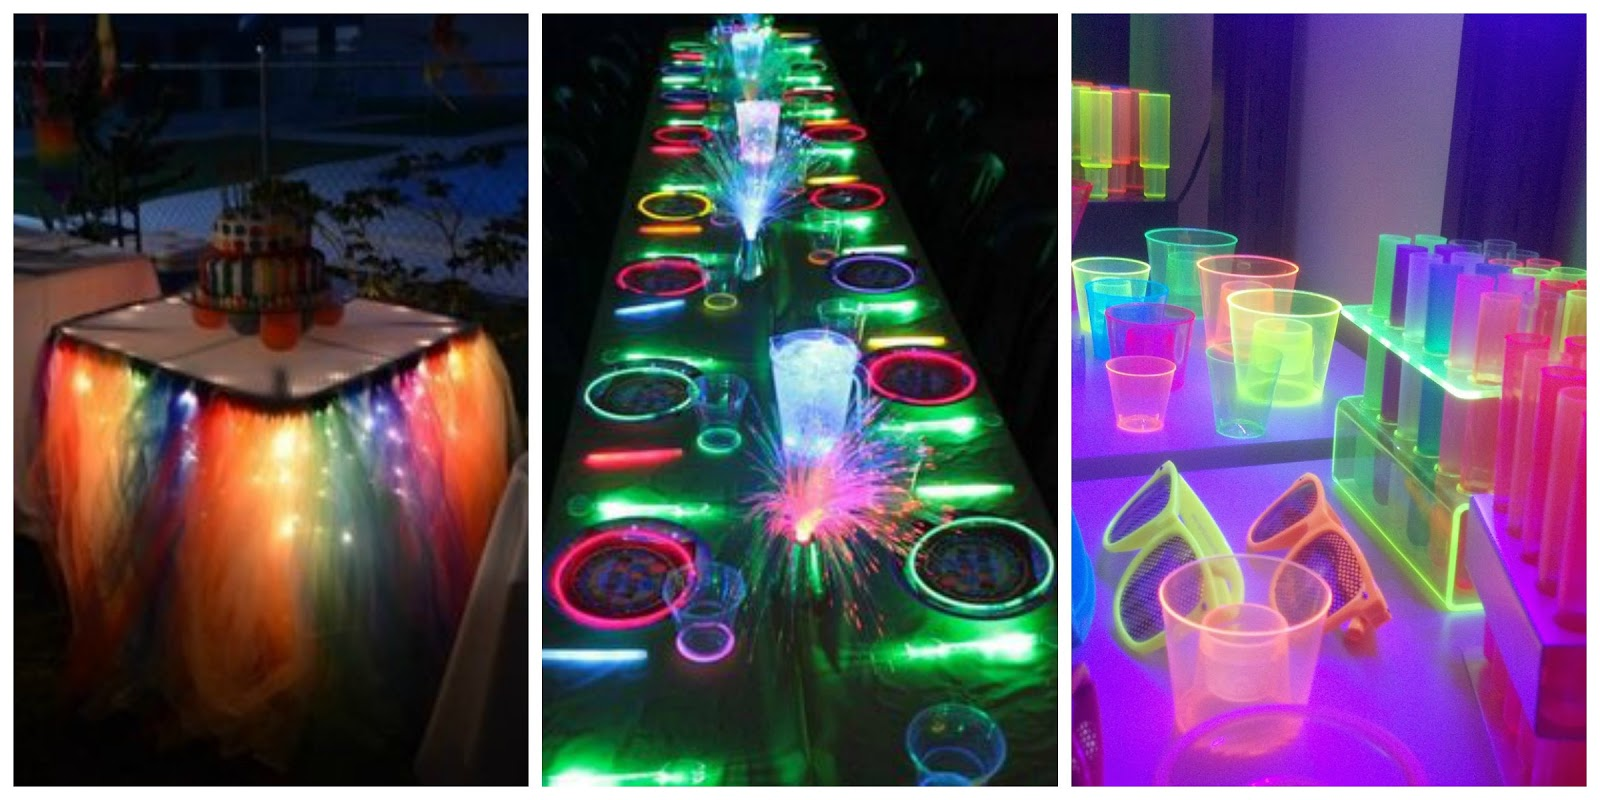 Neon party ideas para la decoraci n outfit y for Quiero ver decoraciones